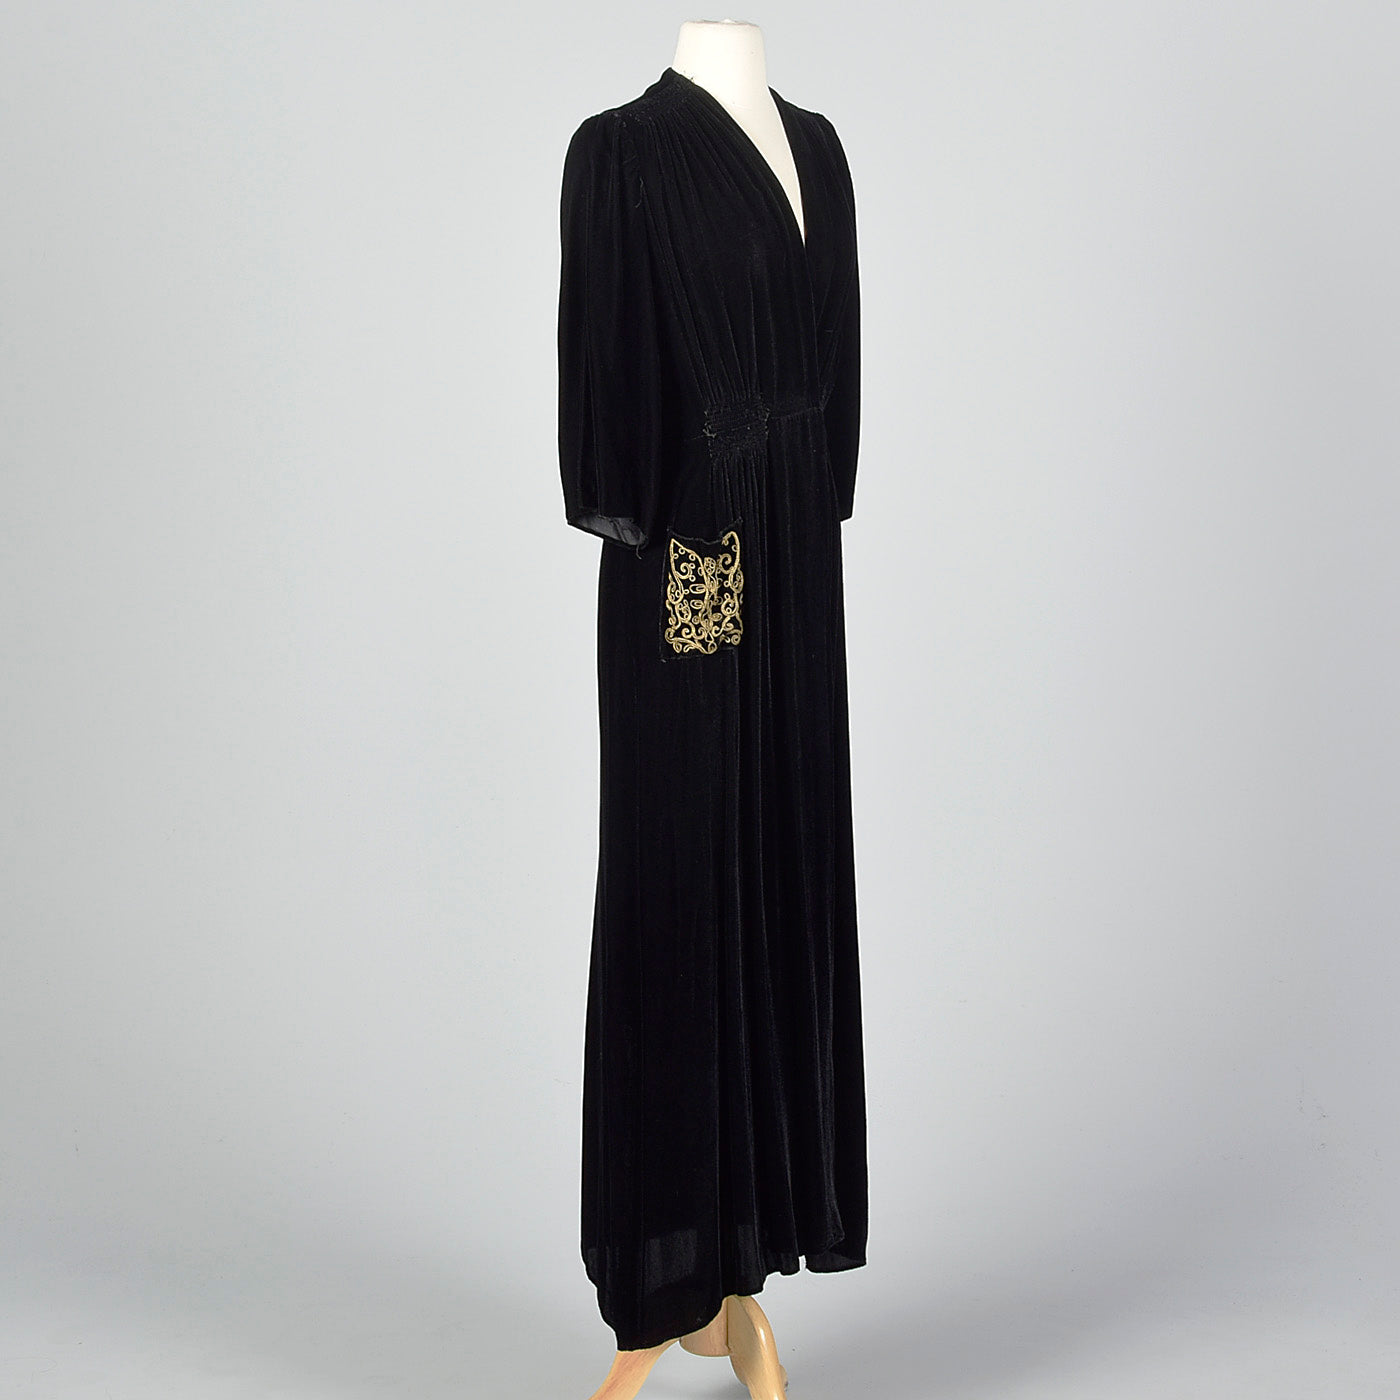 1930s Black Velvet Dressing Gown with Decorative Pocket